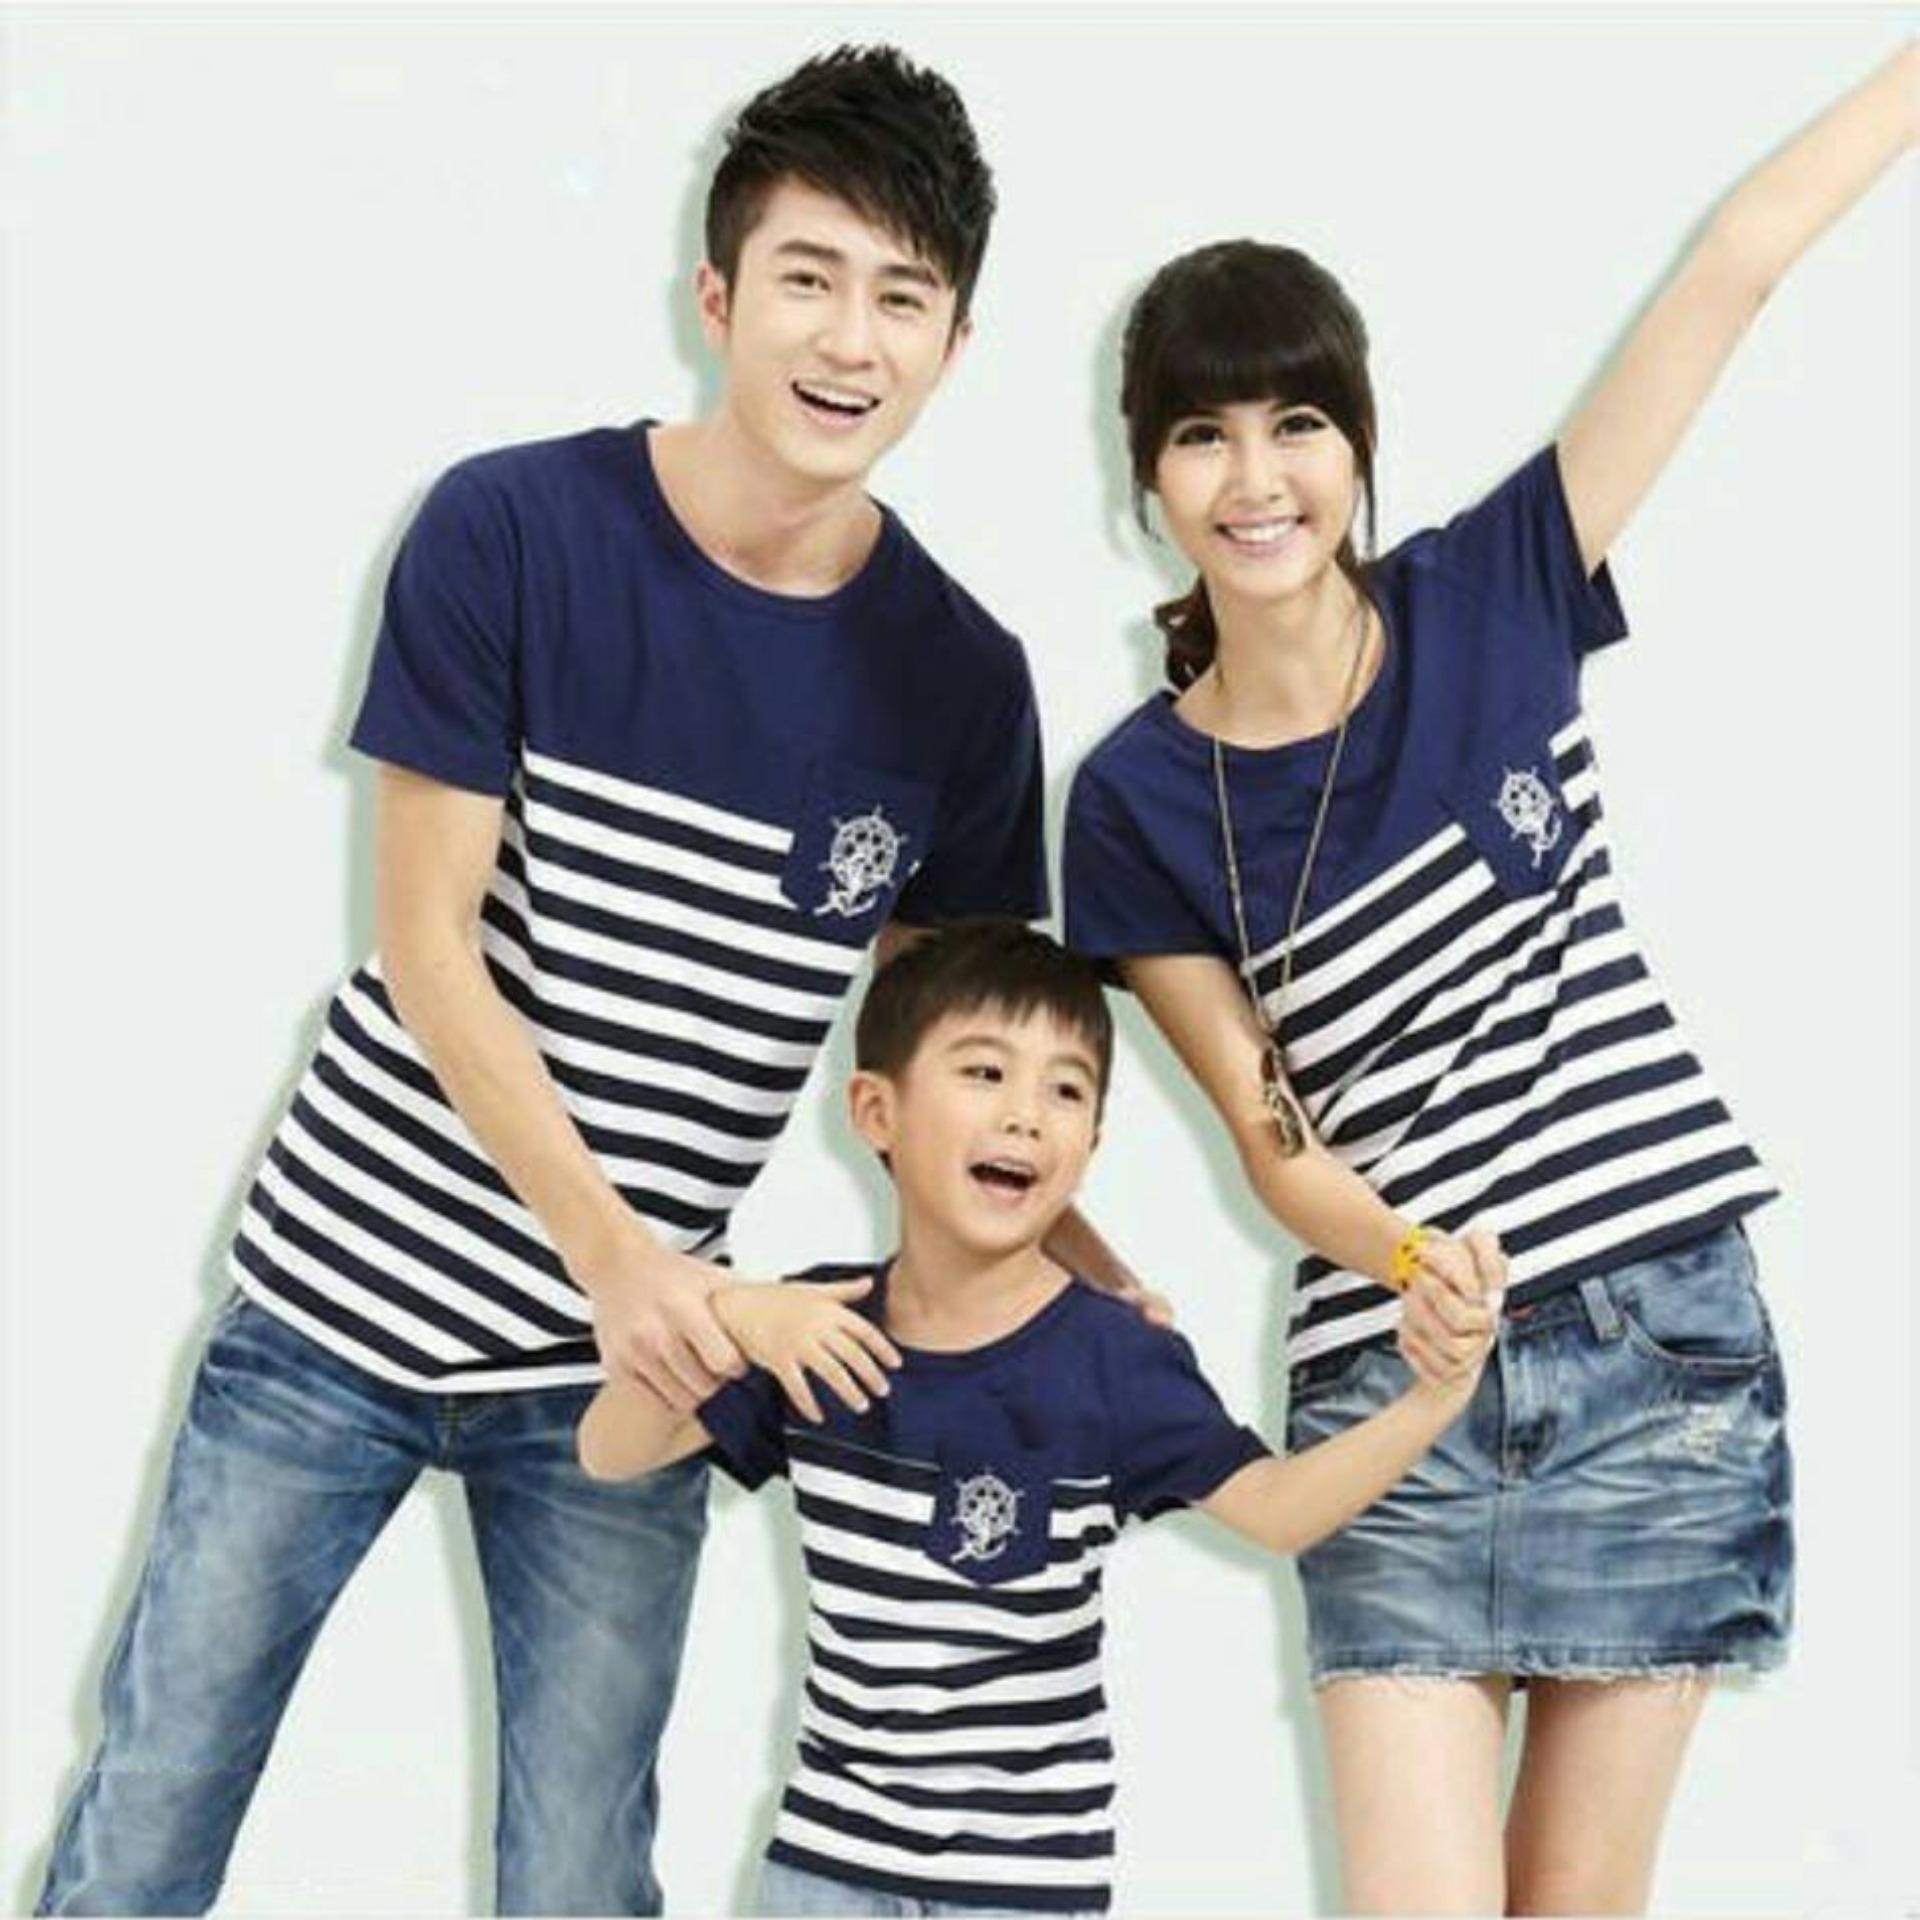 Fashion Flower Baju Keluarga Kaos Family Family Couple Sailorstripe  Anak